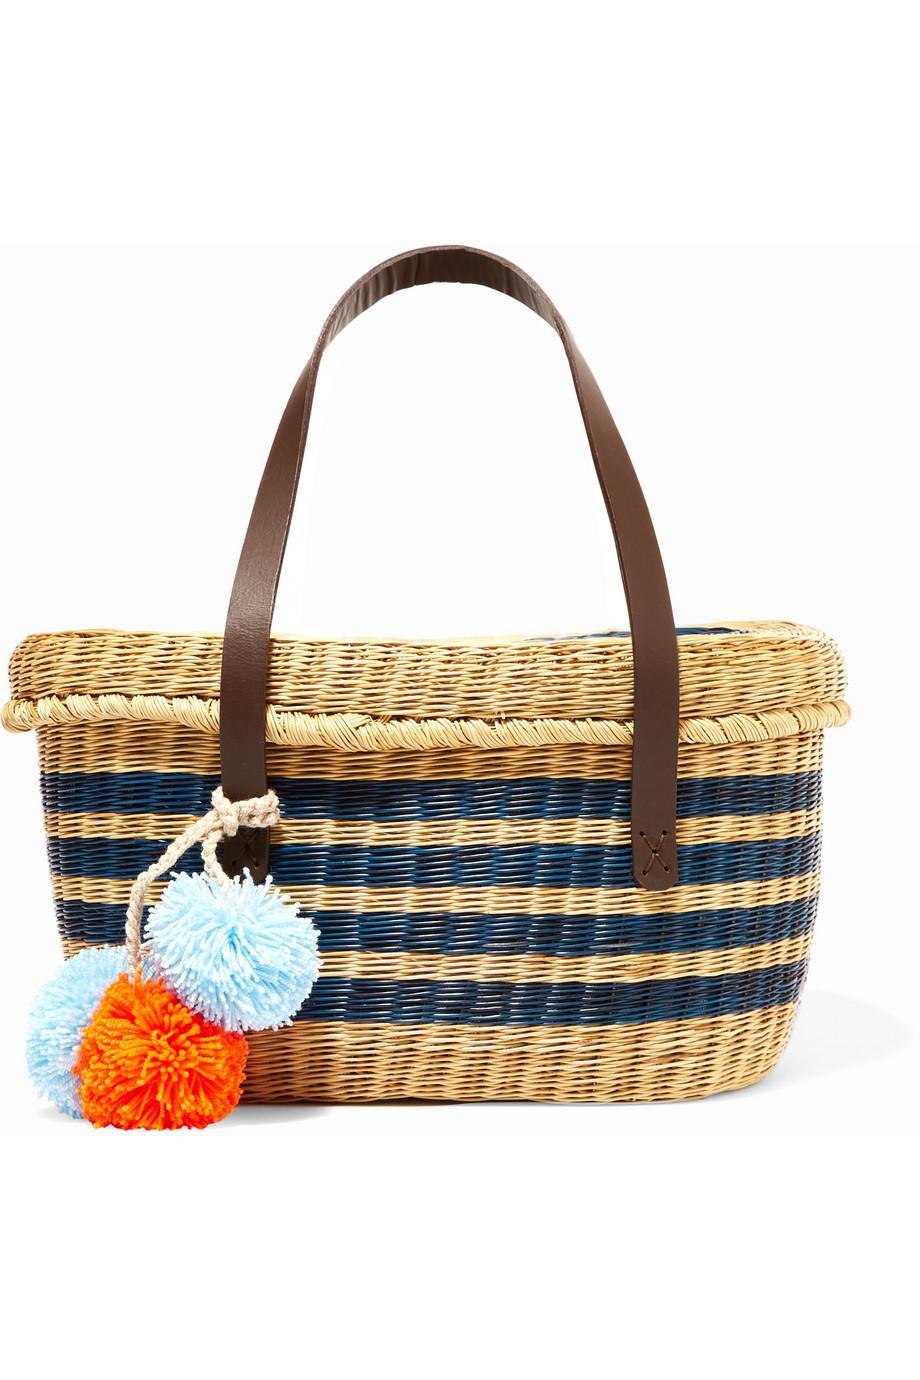 Serenella Pompom-embellished Leather-trimmed Woven Raffia Tote - Blue Sophie Anderson xHUBIl0aX